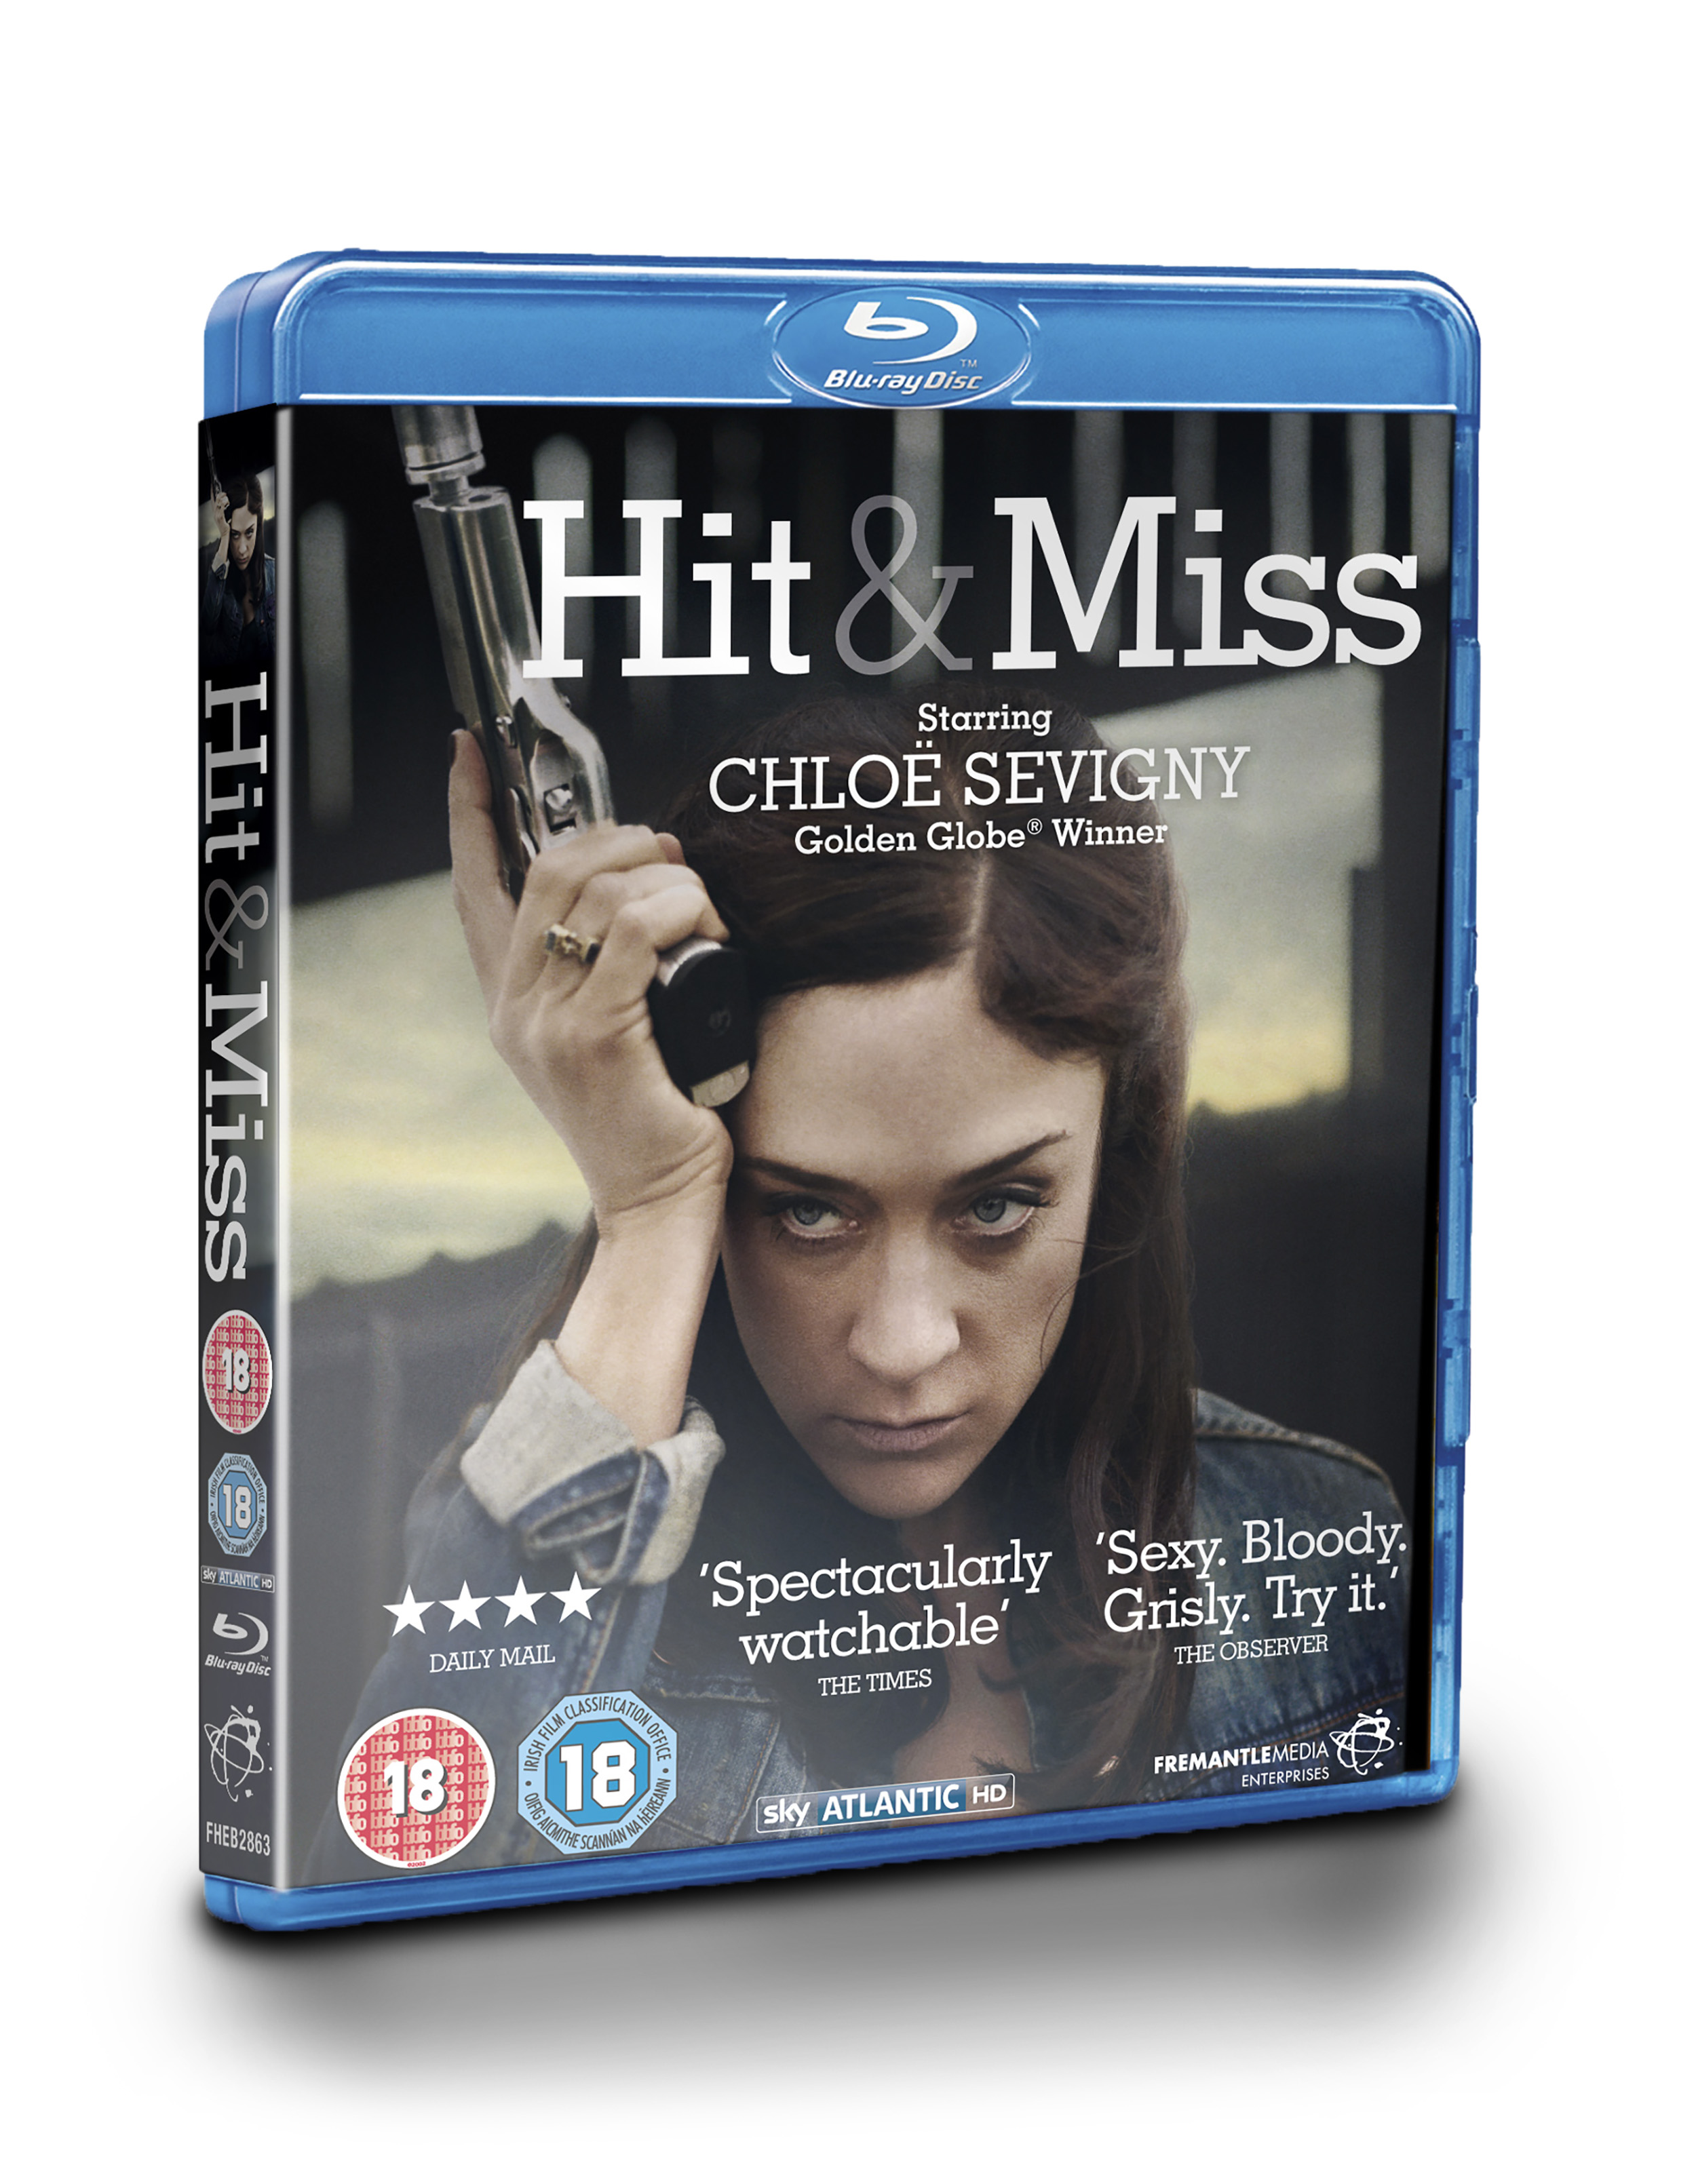 Hit and Miss Blu-ray/DVD packaging